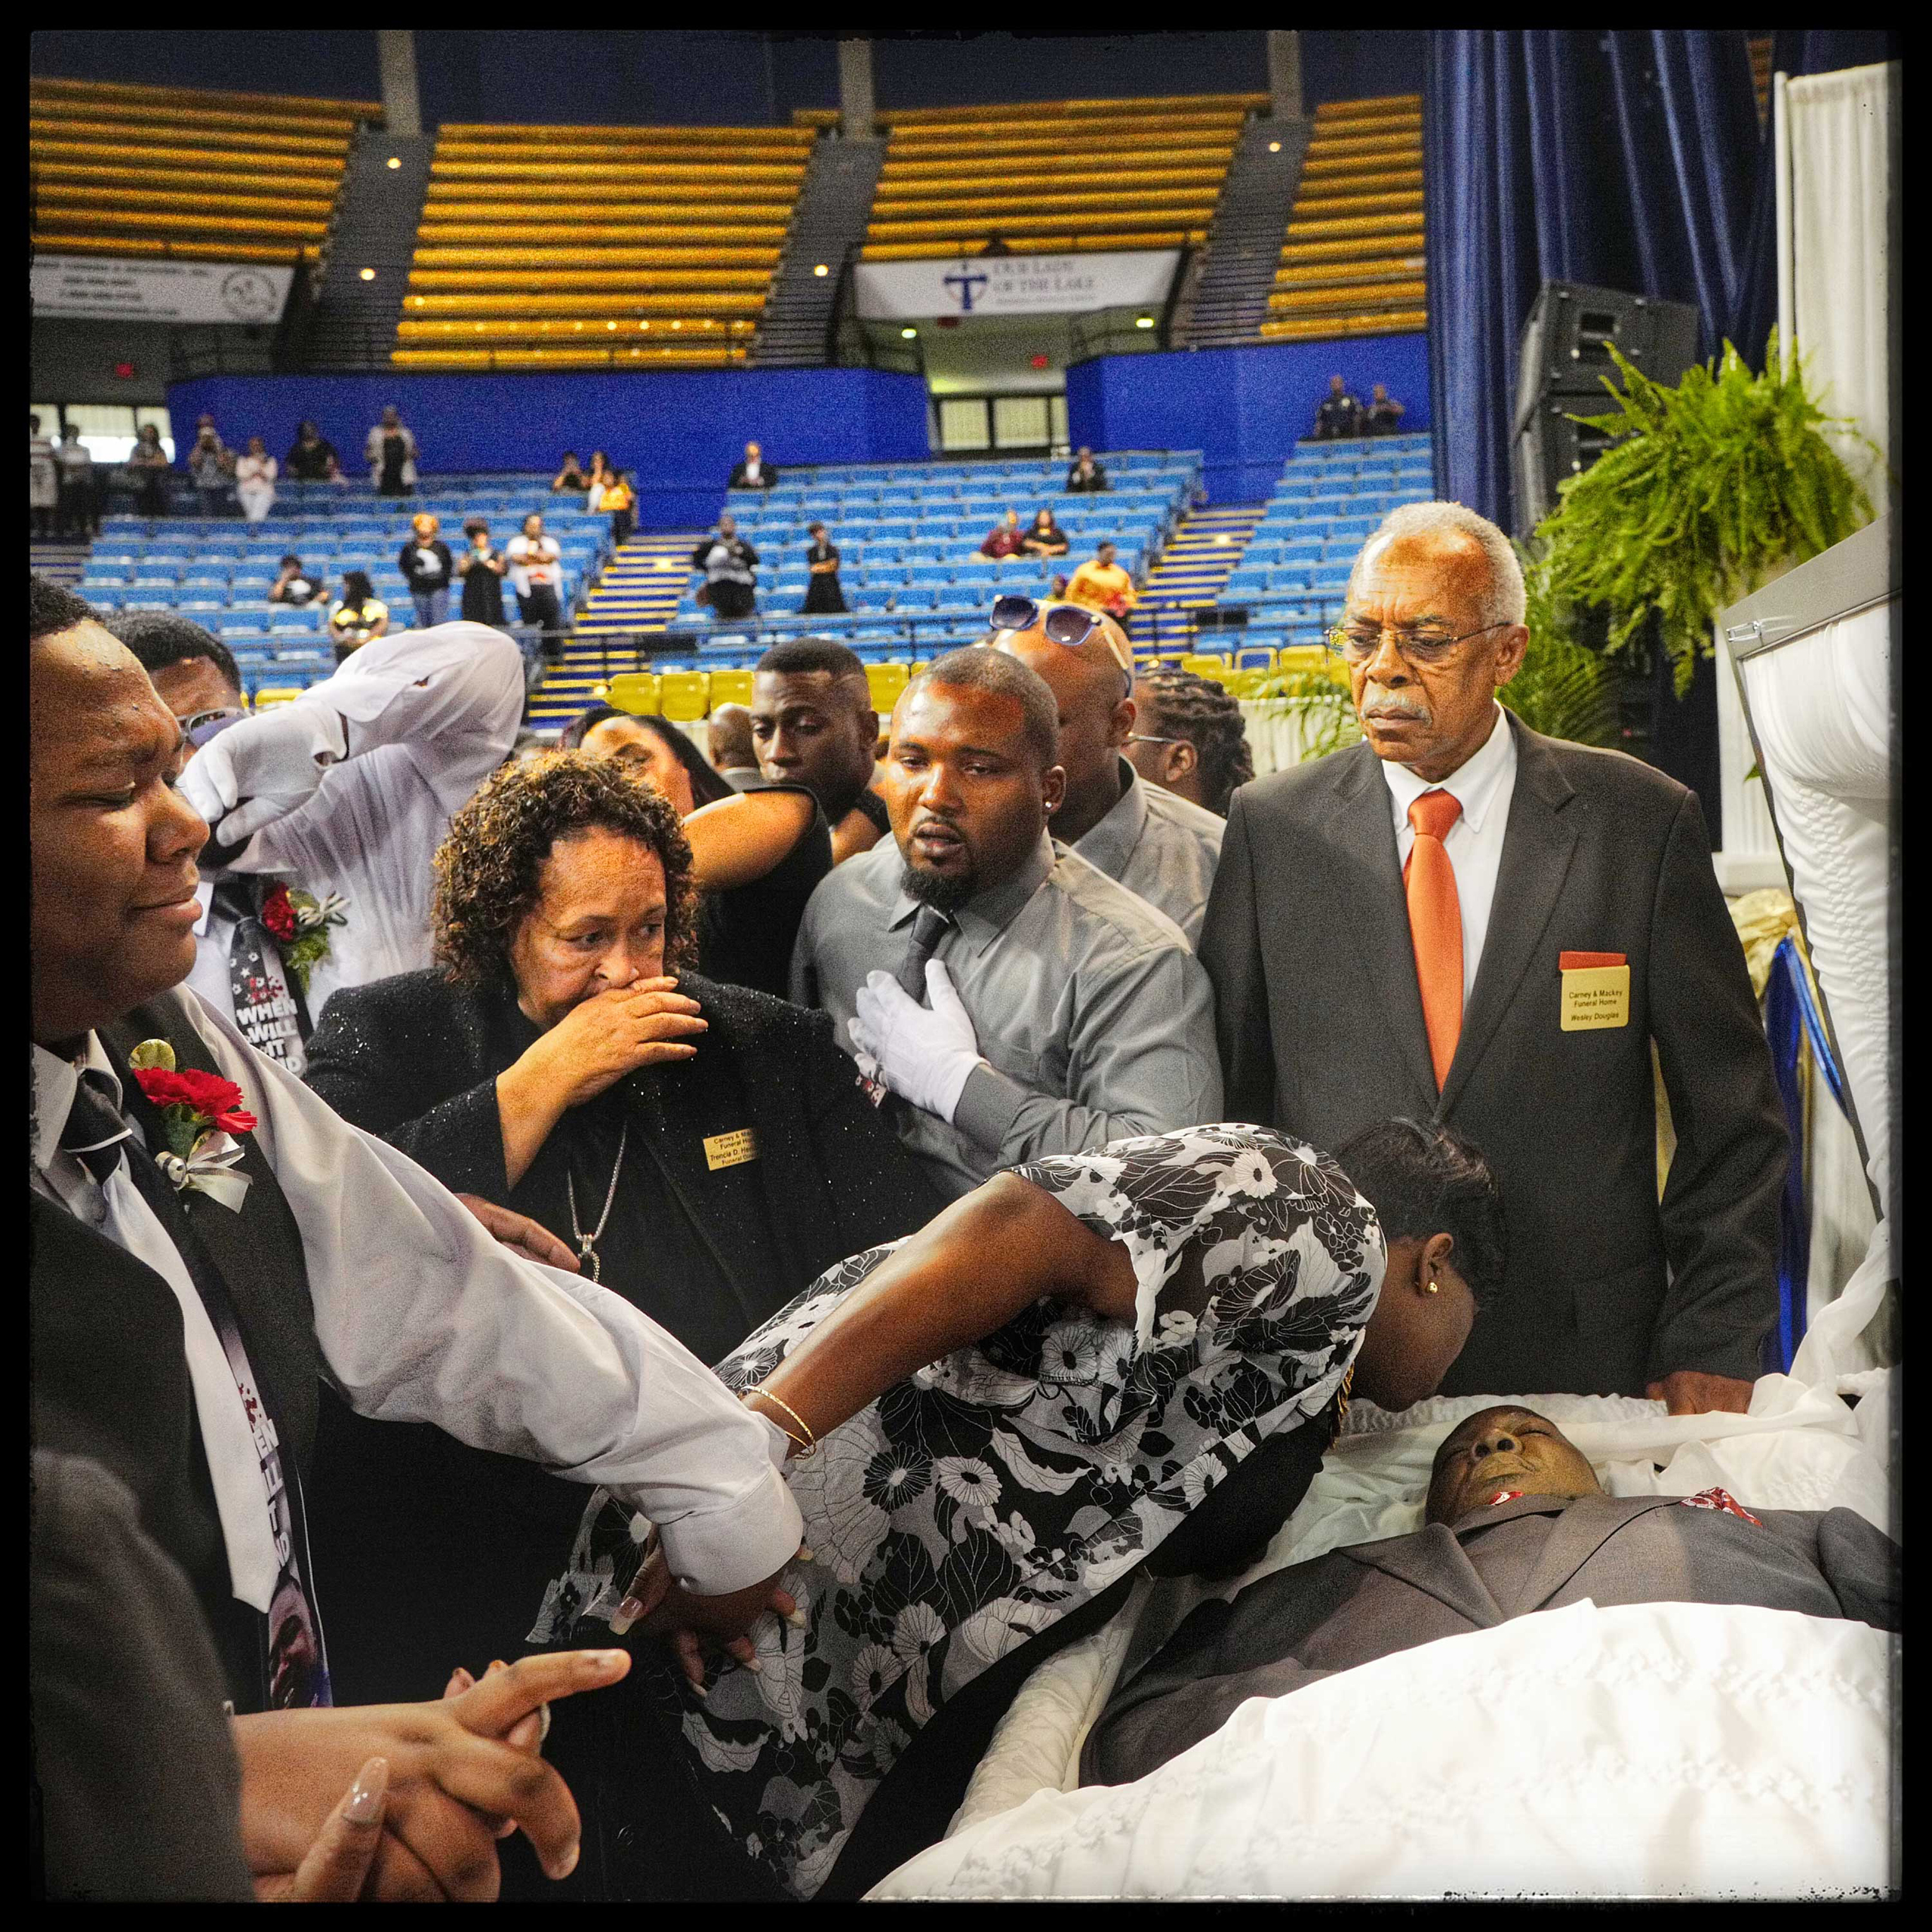 Baton Rouge, La.: Quinyetta McMillon says her final goodbye to Alton Sterling with a kiss as their 15-year-old son Cameron looks on with tears. They are flanked by relatives who rushed to the front to say goodbye for the final time.